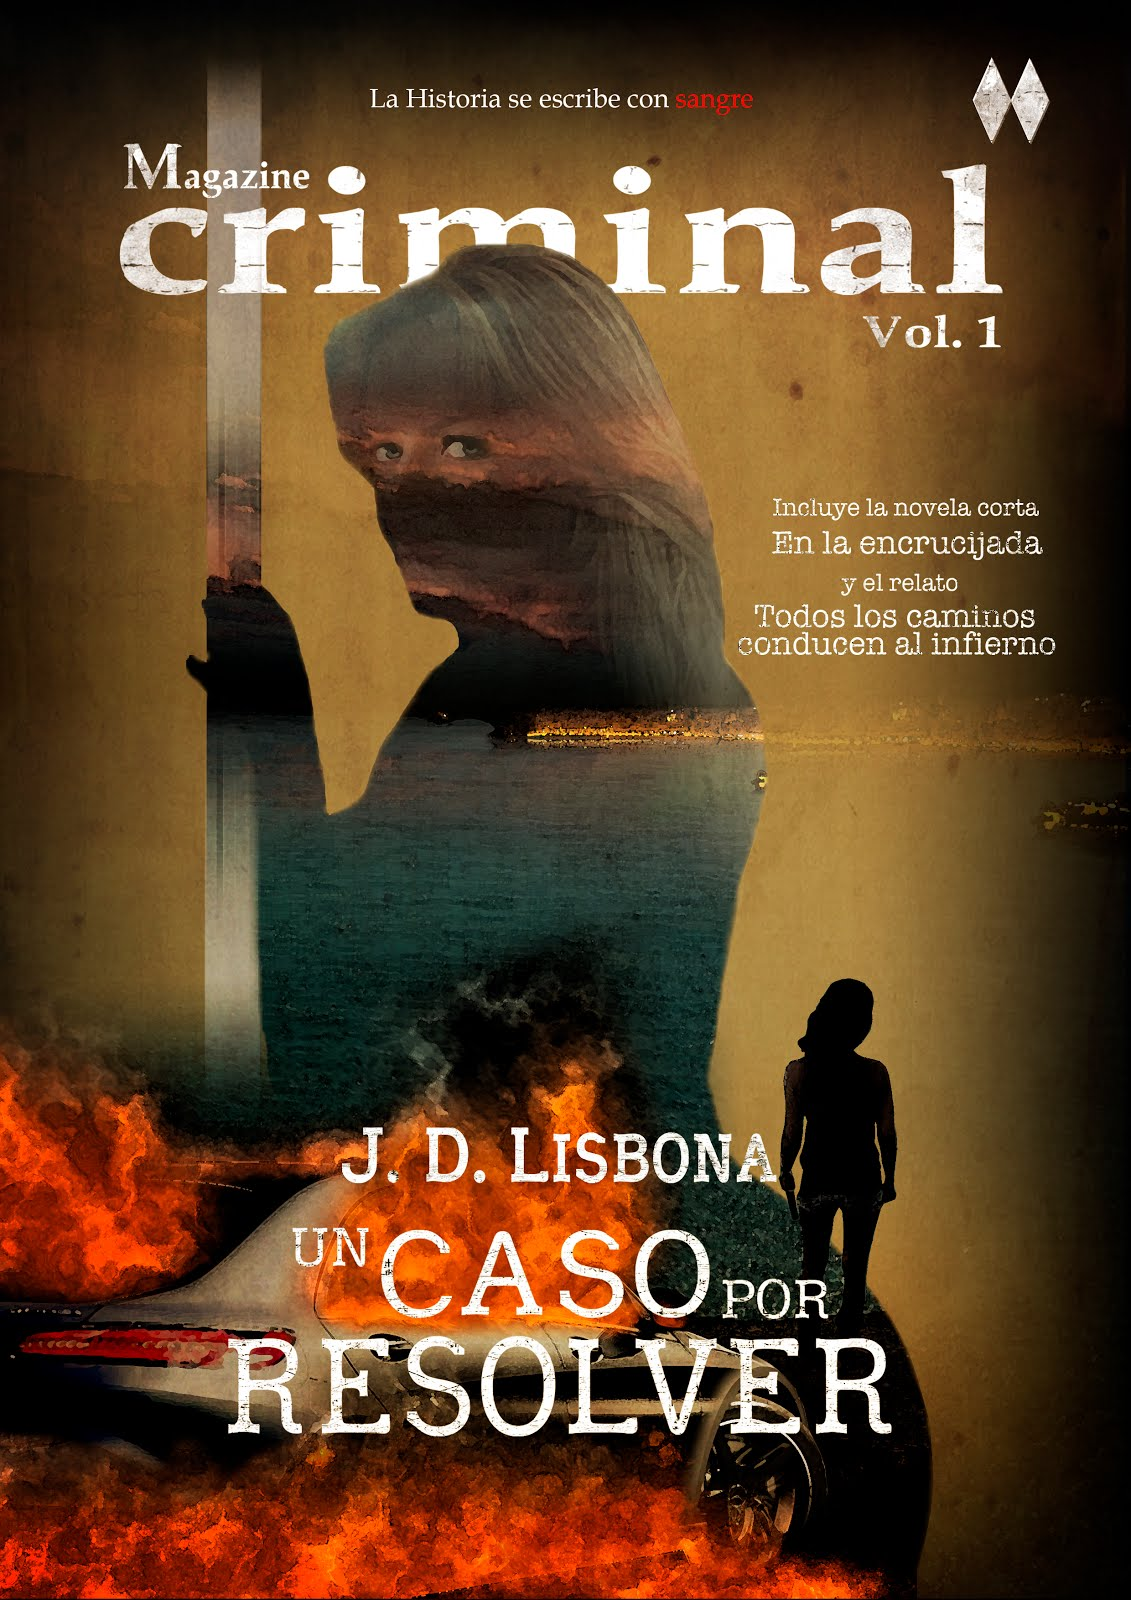 UN CASO POR RESOLVER (Magazine criminal. Vol. 1)